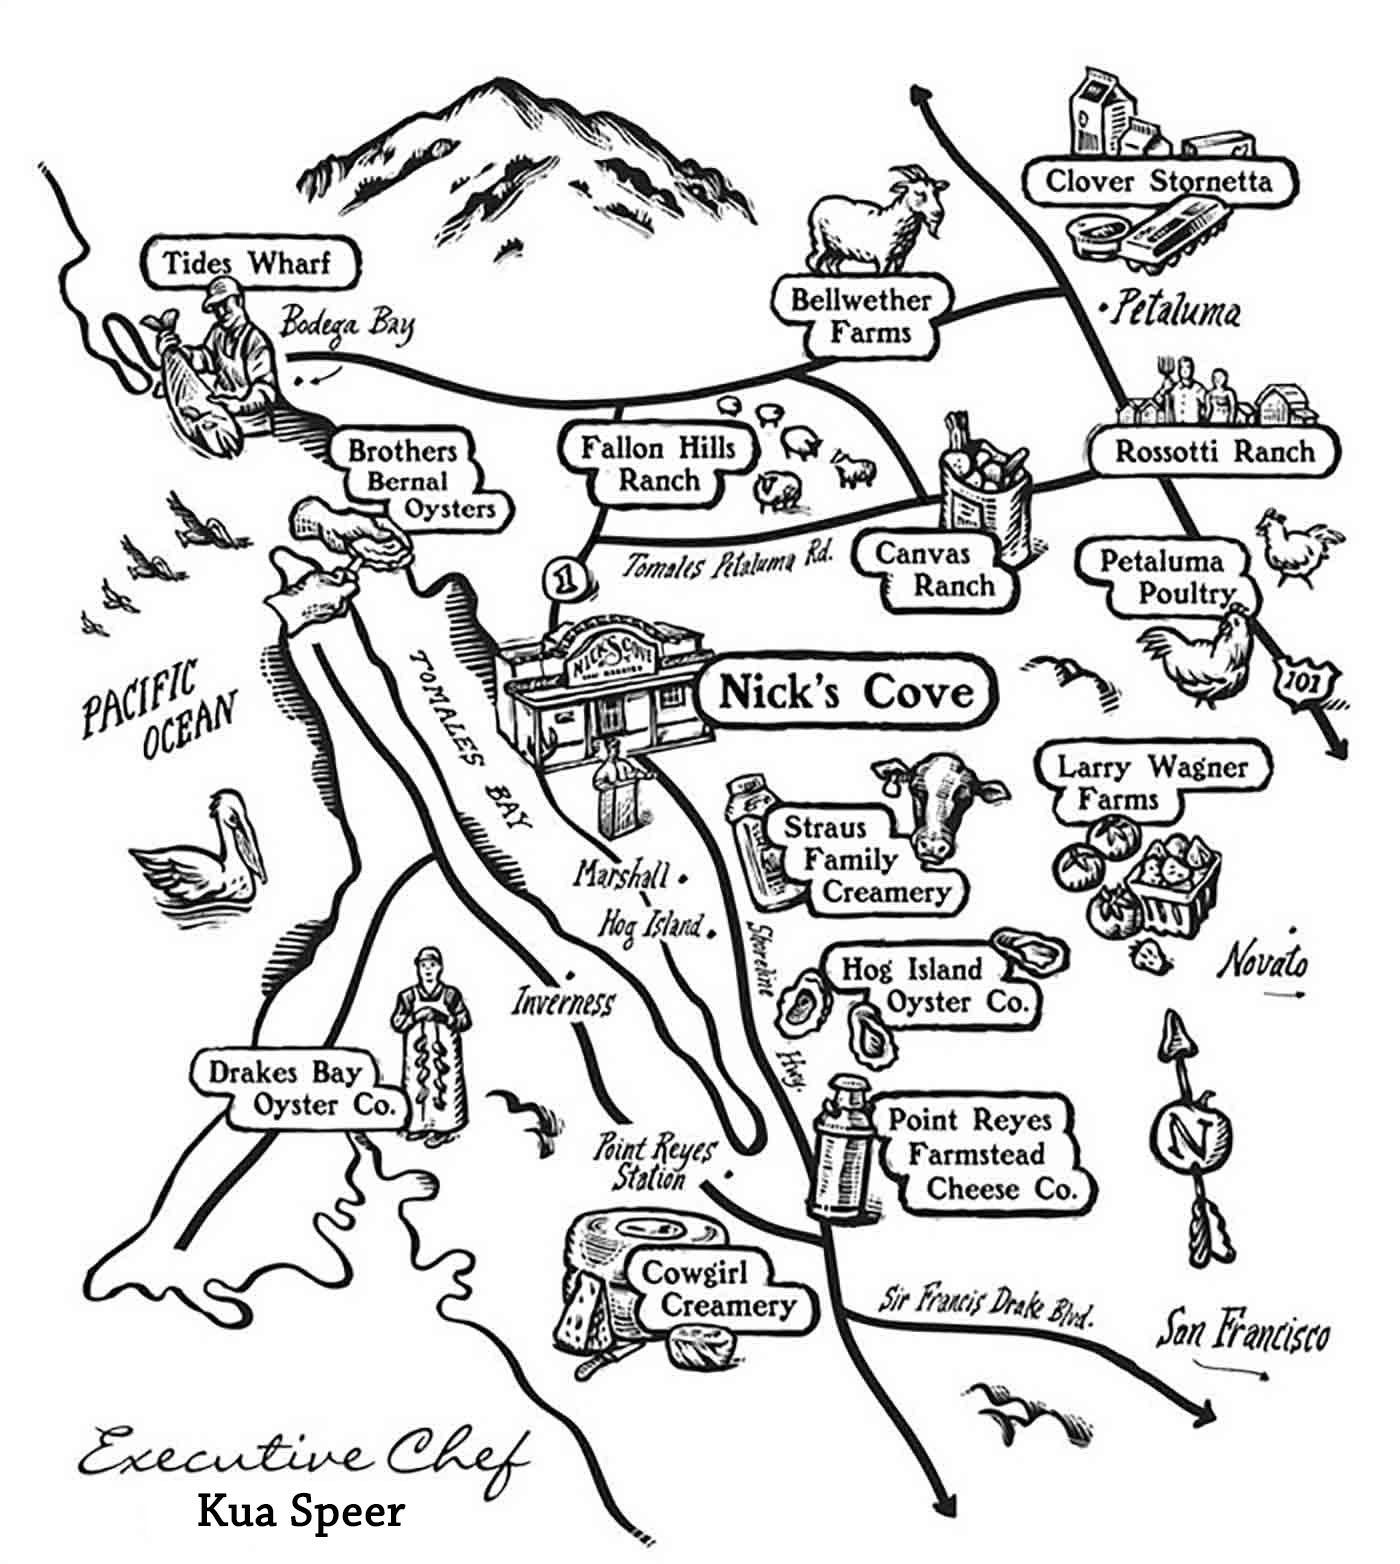 nicks cove sources map